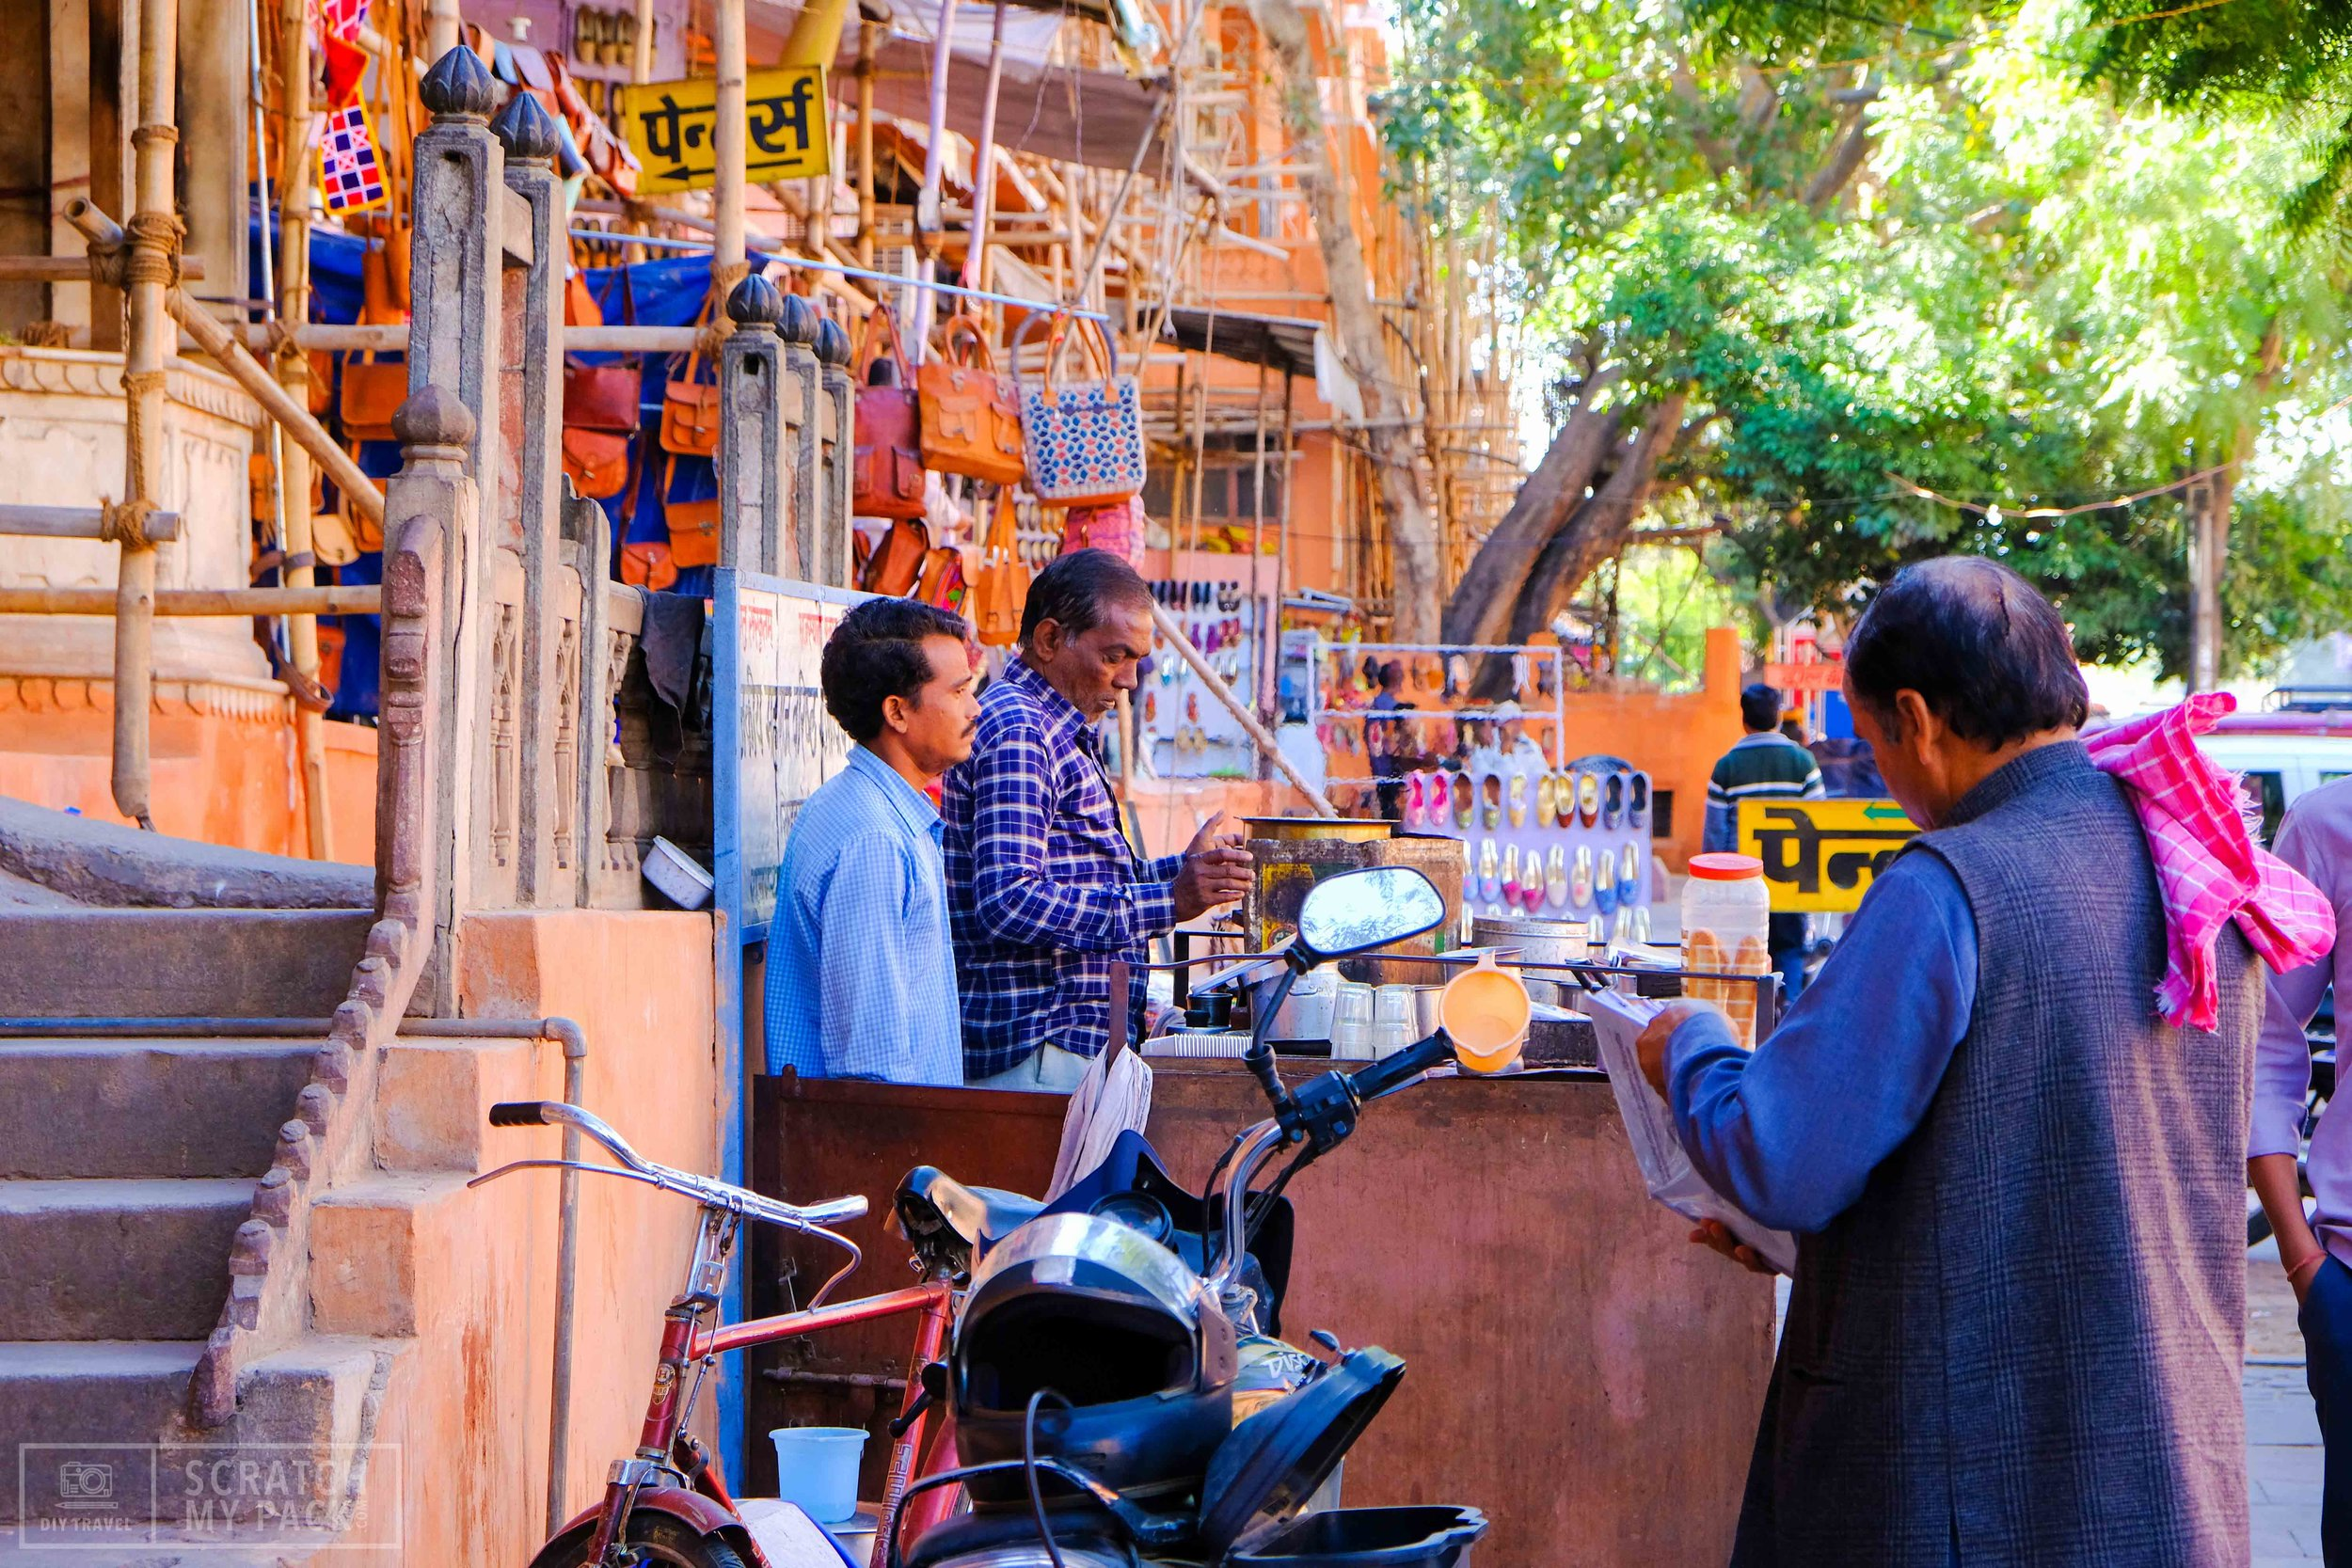 Bazaar's throughout the gated city -   Free to visit -  Jaipur is known around India as a great city for anything shopping related. Here you can get anything made; from shoes to hats to a 5 piece suit all made in 1 day. Spend a few hours strolling the shops and finding unique souvenirs. Don't forget your camera!